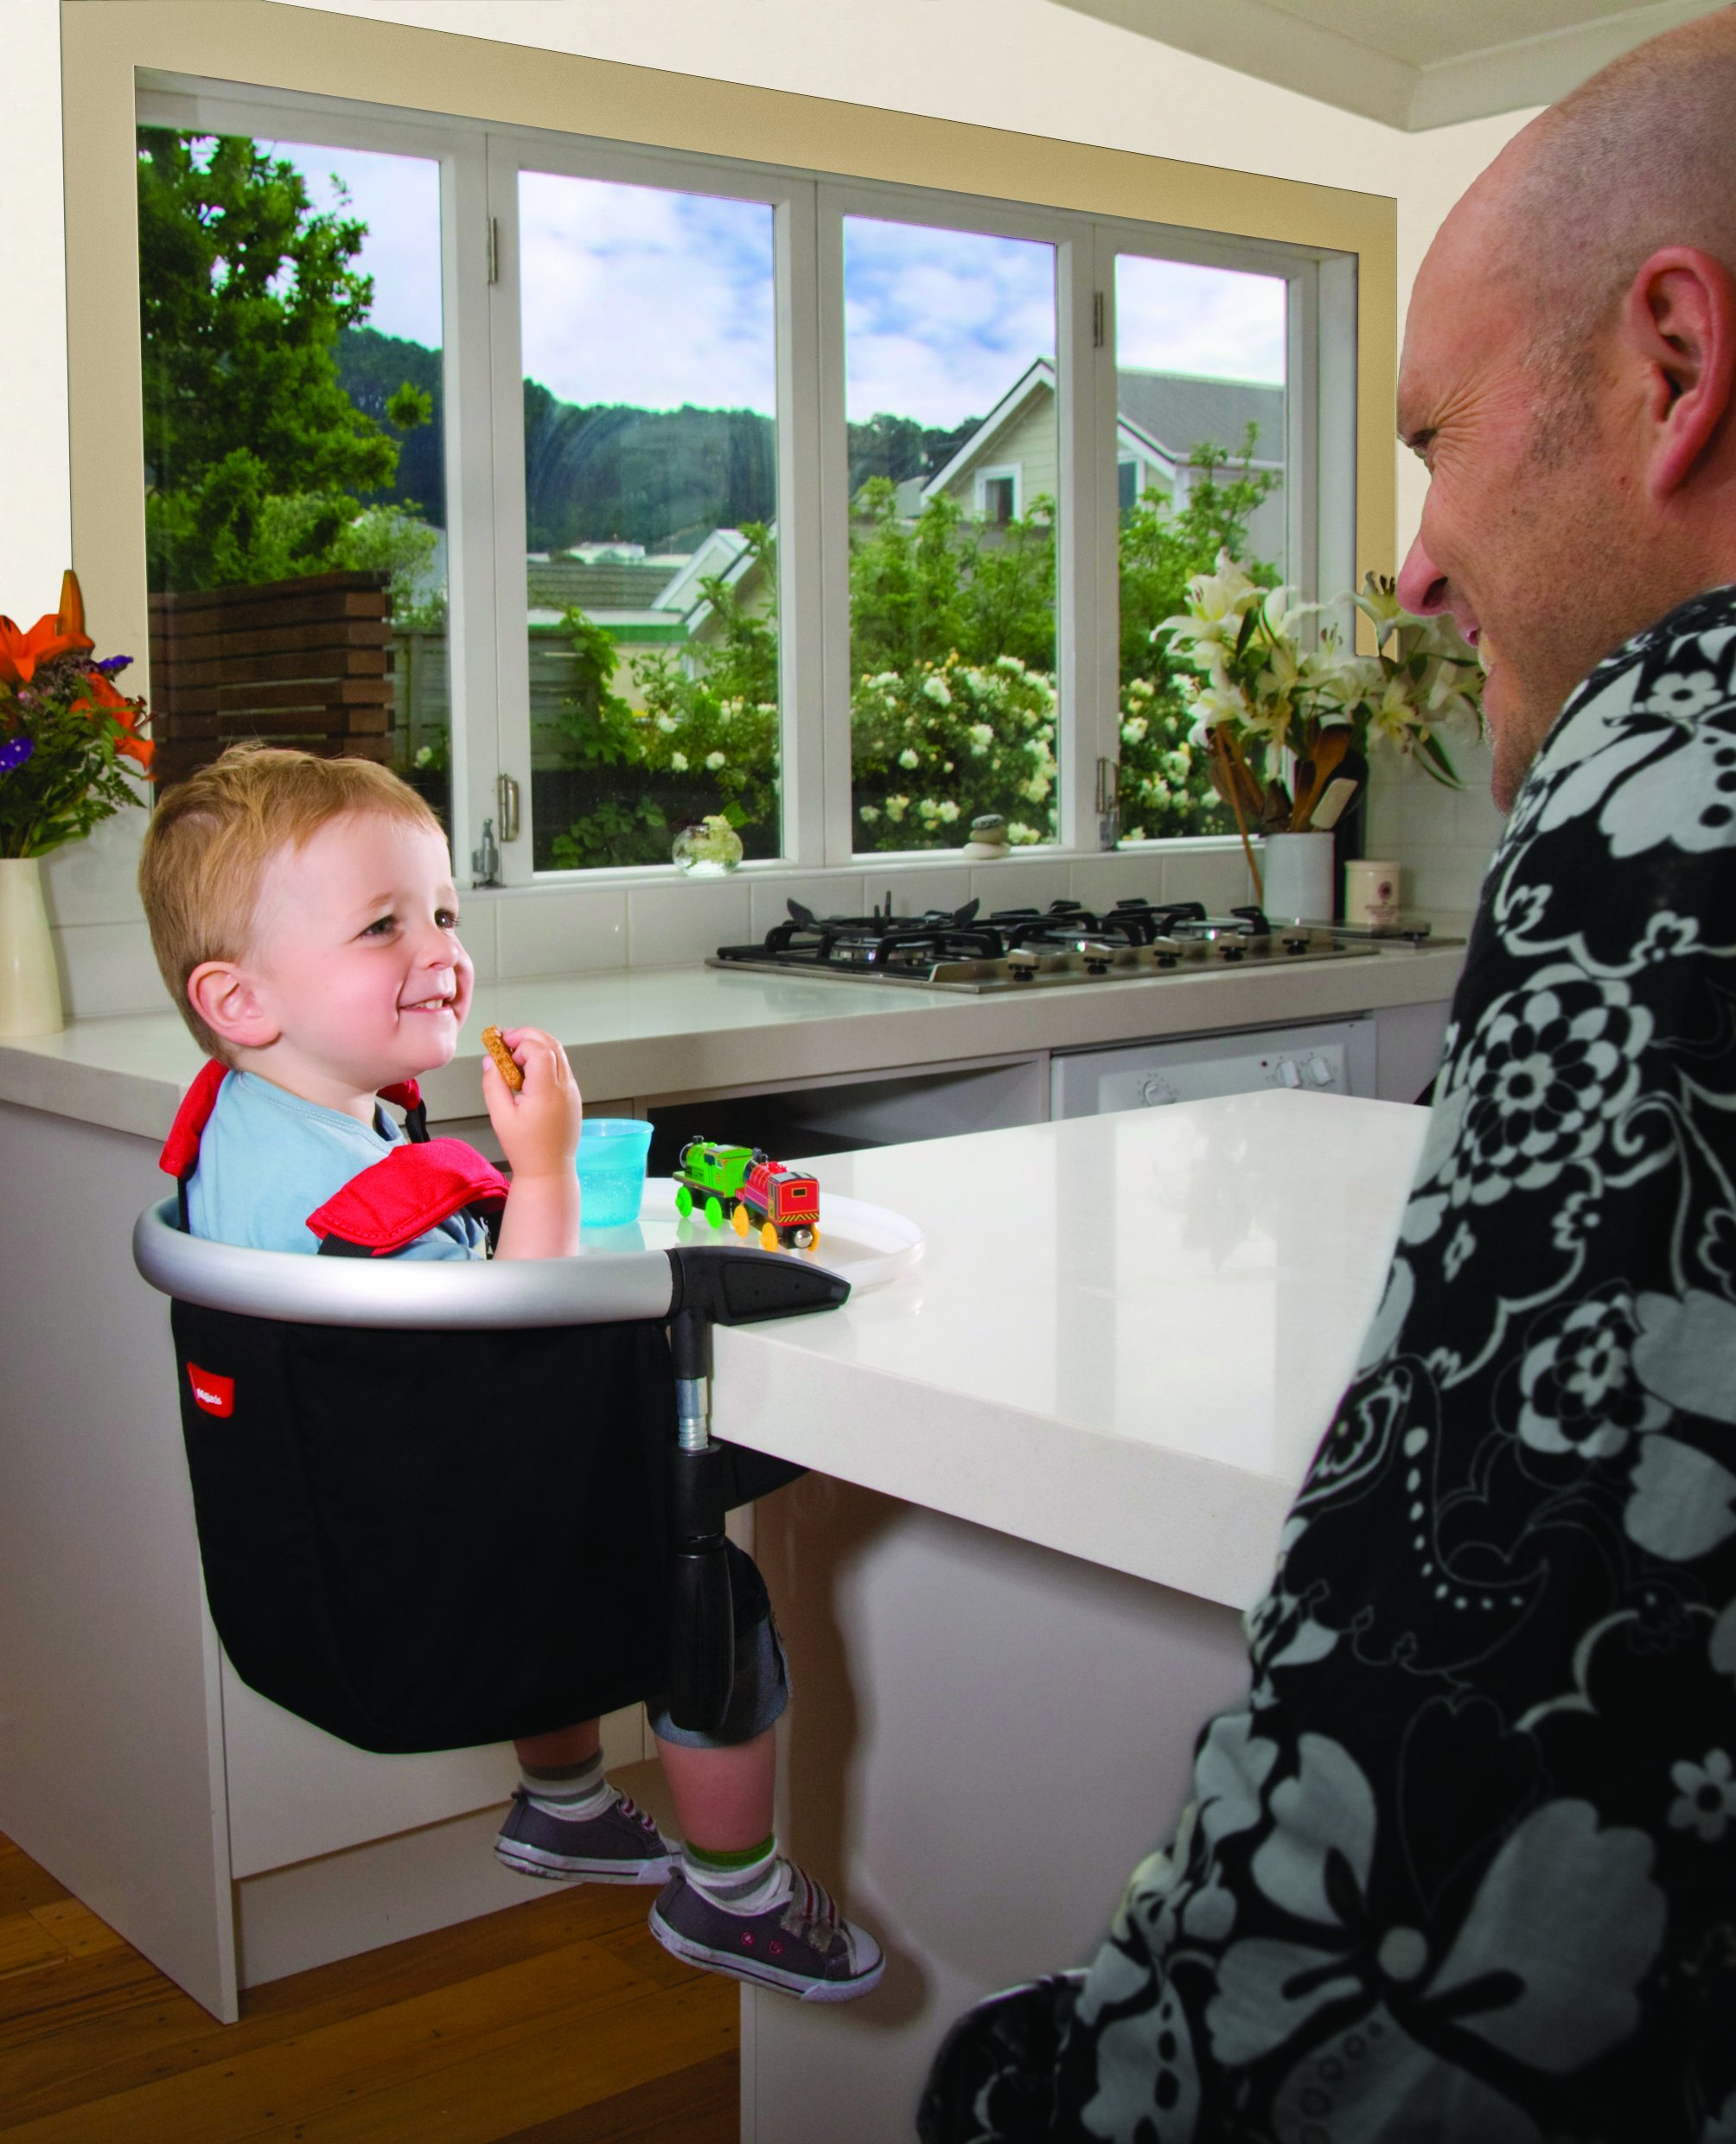 phil&teds Lobster Clip-On Highchair, Black - Award Winning Portable High Chair - Includes Carry Bag and Dishwasher Safe Tray - Hygienic and Easy Clean - Safe and Secure - Ideal For Home and Travel by phil&teds (Image #9)